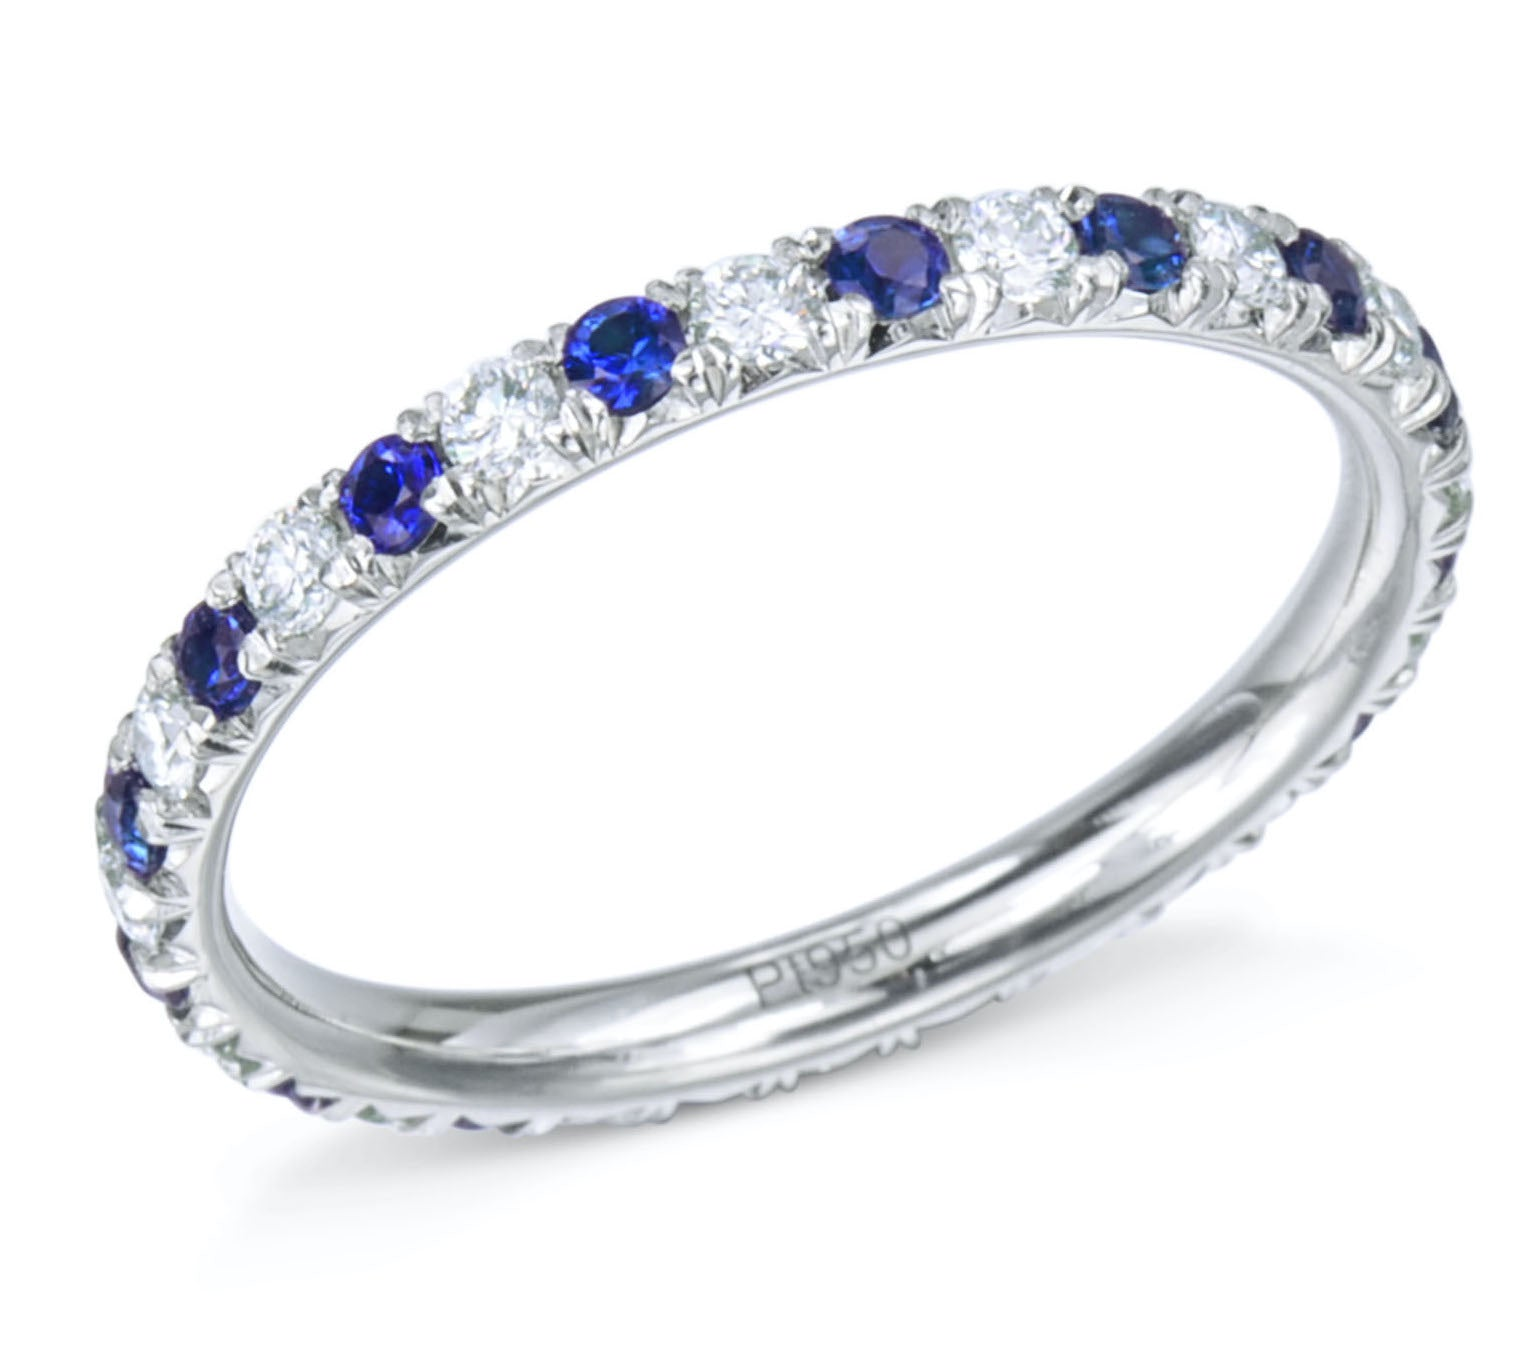 Custom Sapphire and Diamond Eternity Band